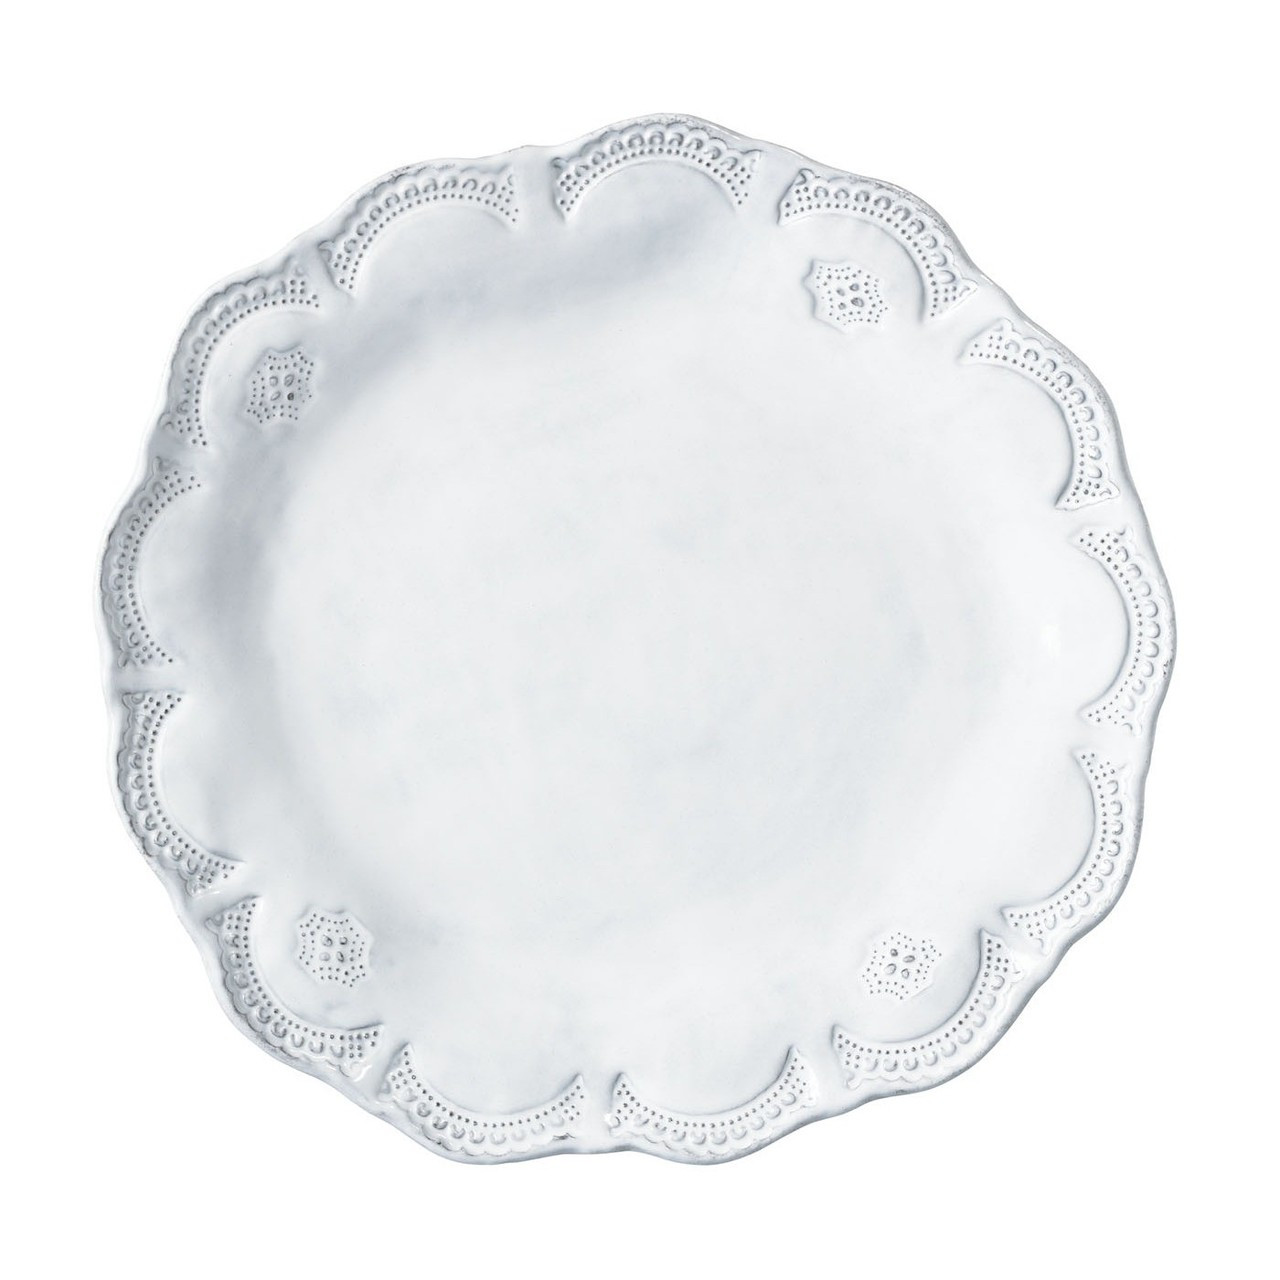 The Incanto White Lace Dinner Plate was inspired by antique lace owned by the artisanu0027s grandmother  sc 1 st  Plum Pudding & Vietri Incanto Lace American Dinner Plate